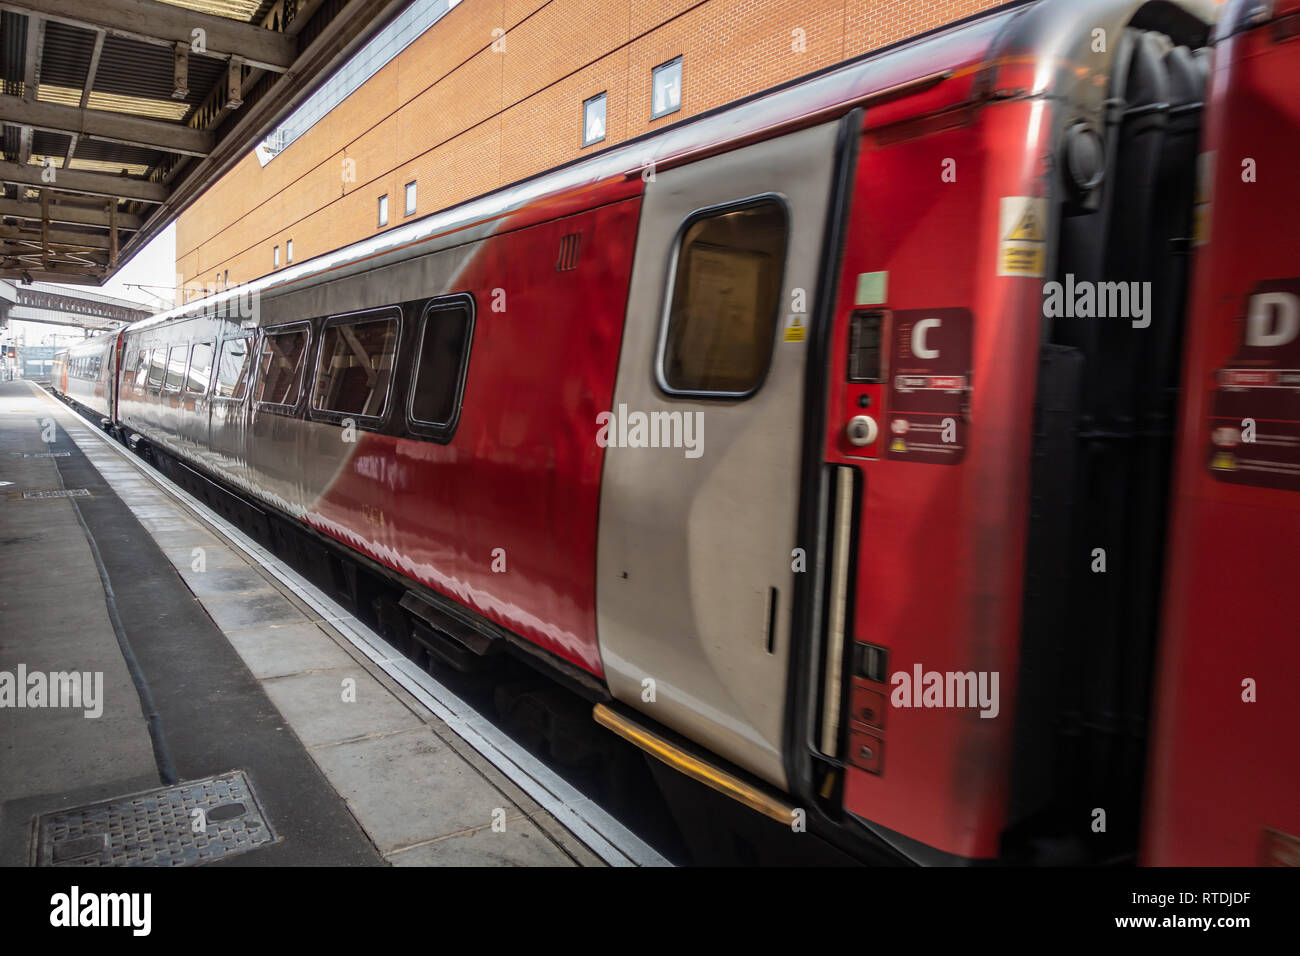 Doncaster to London train pulling into Doncaster Station, Yorkshire, England - Stock Image